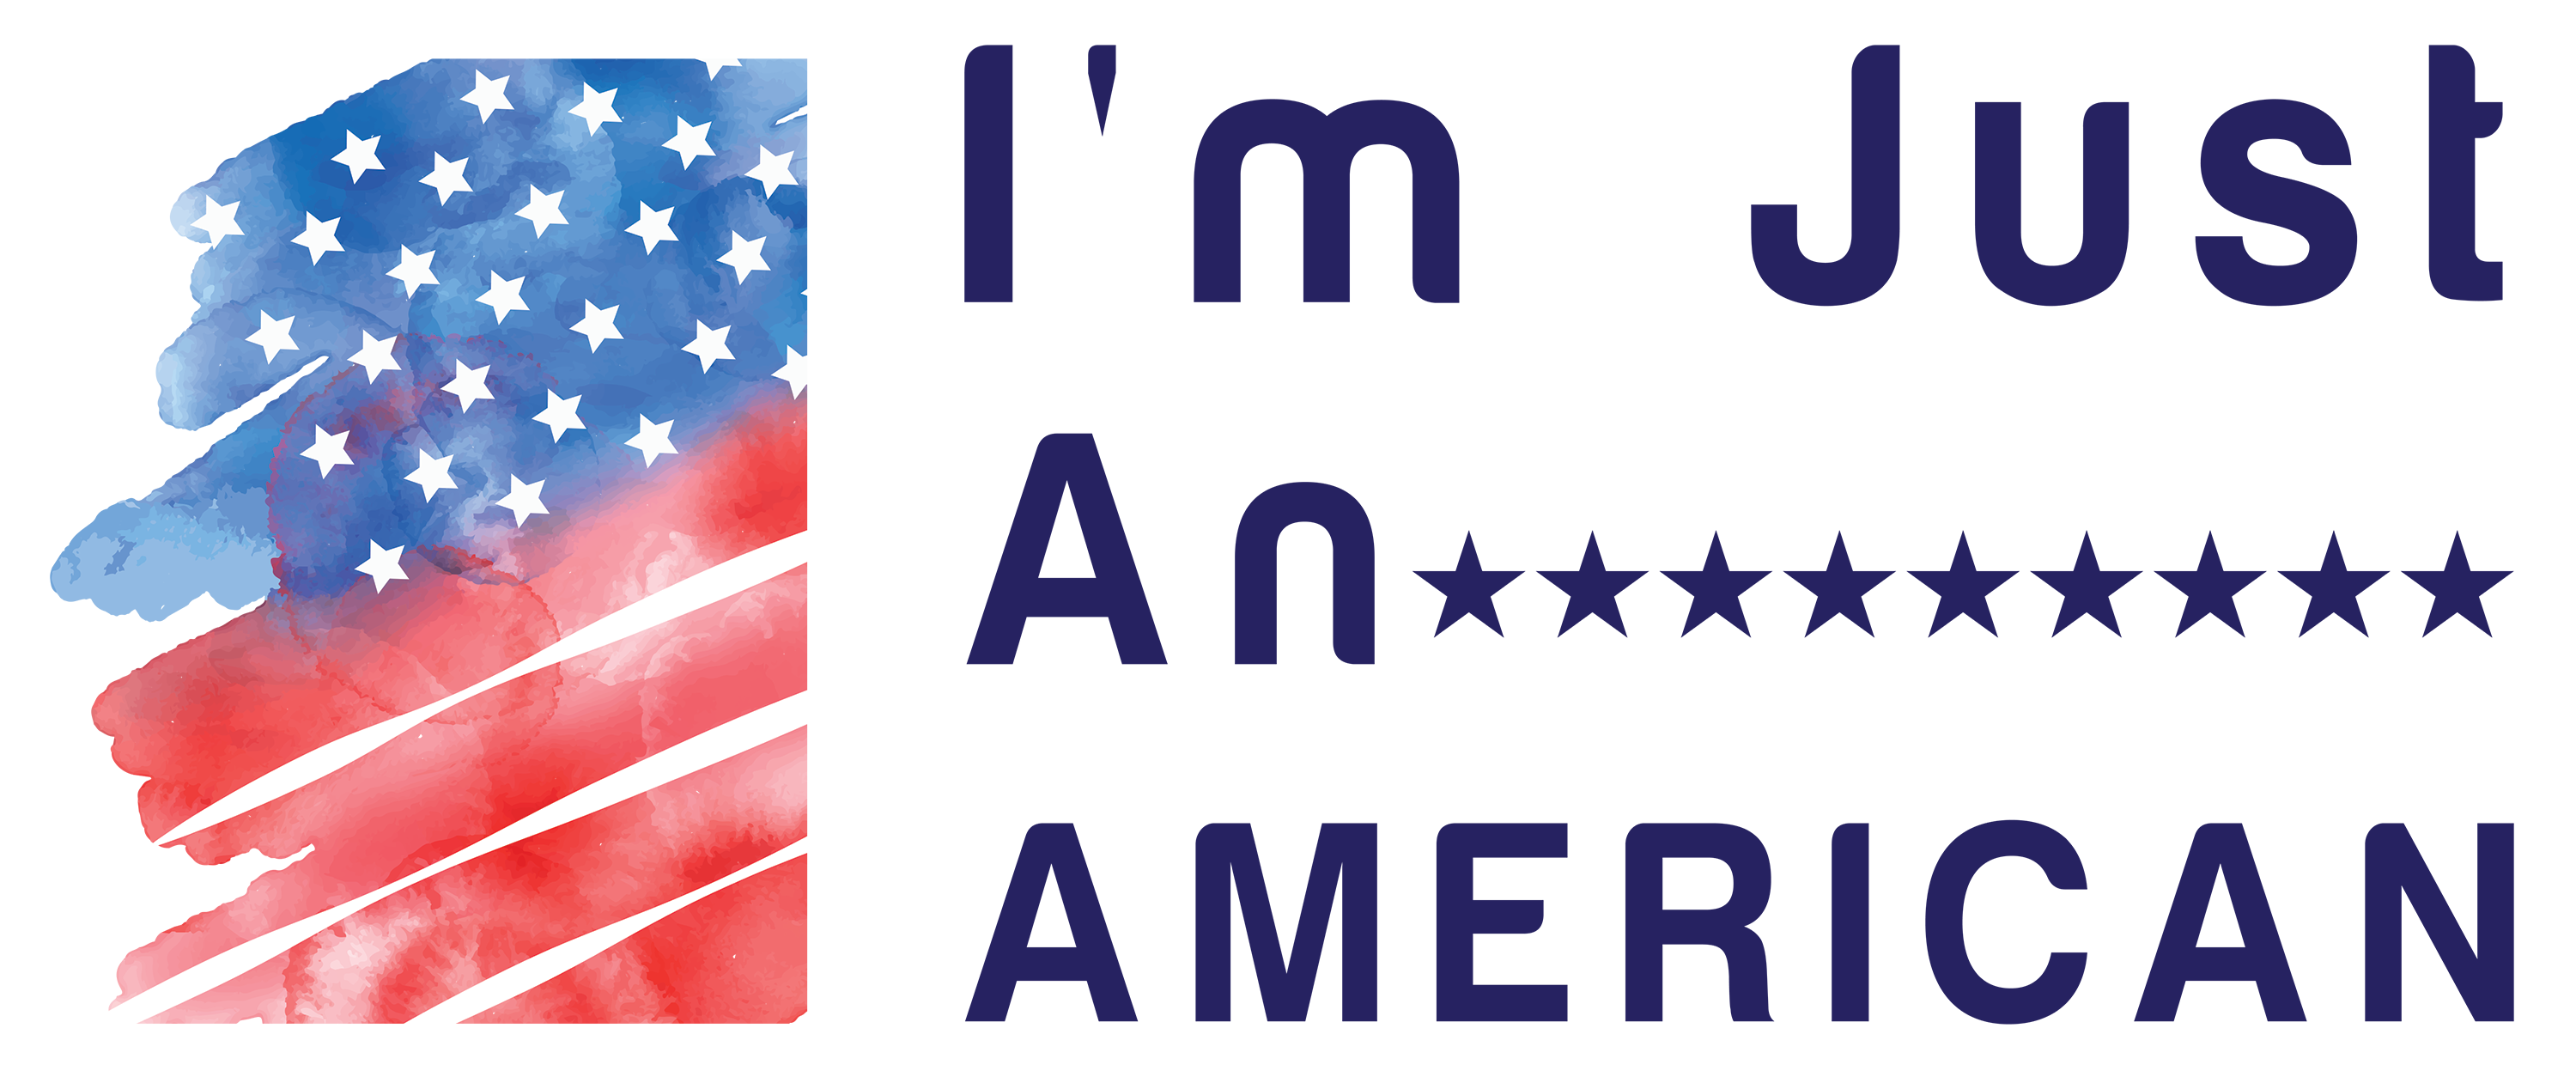 I'm Just an American